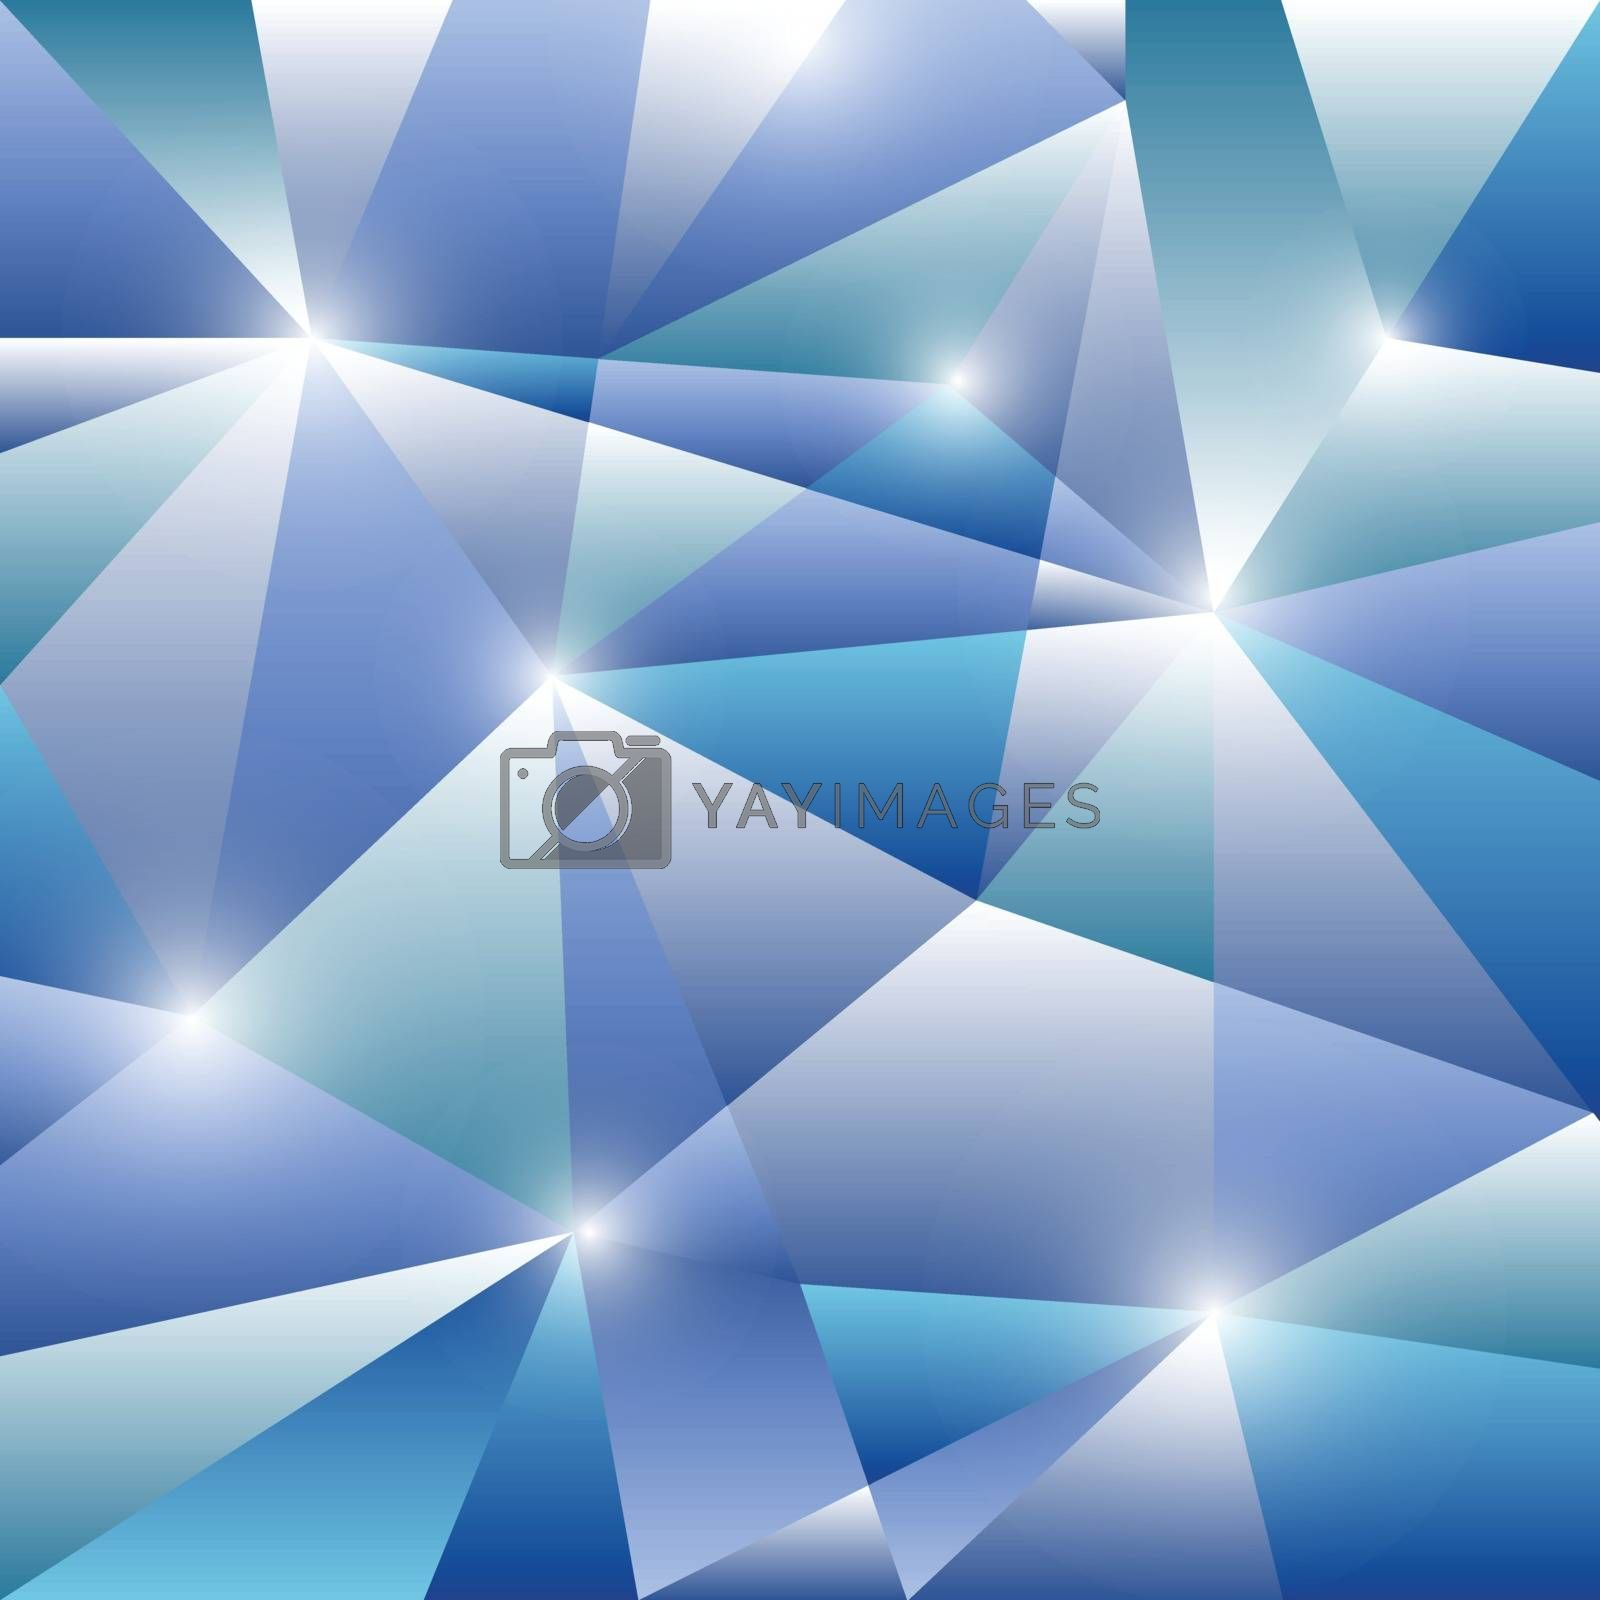 Geometric pattern with blue triangles background, stock vector